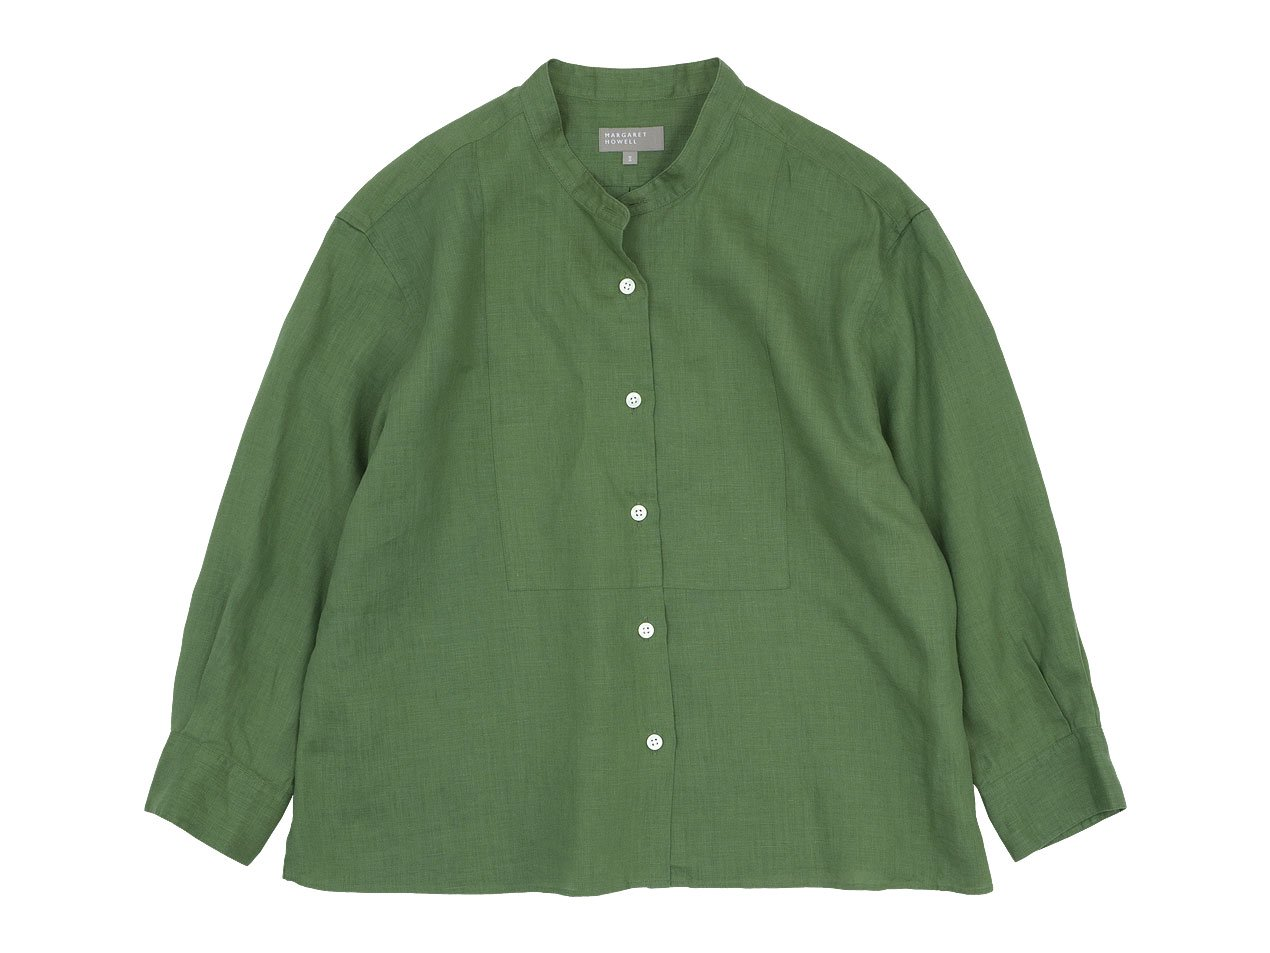 MARGARET HOWELL LINEN VOILE NO COLLAR SHIRTS 140GREEN〔レディース〕